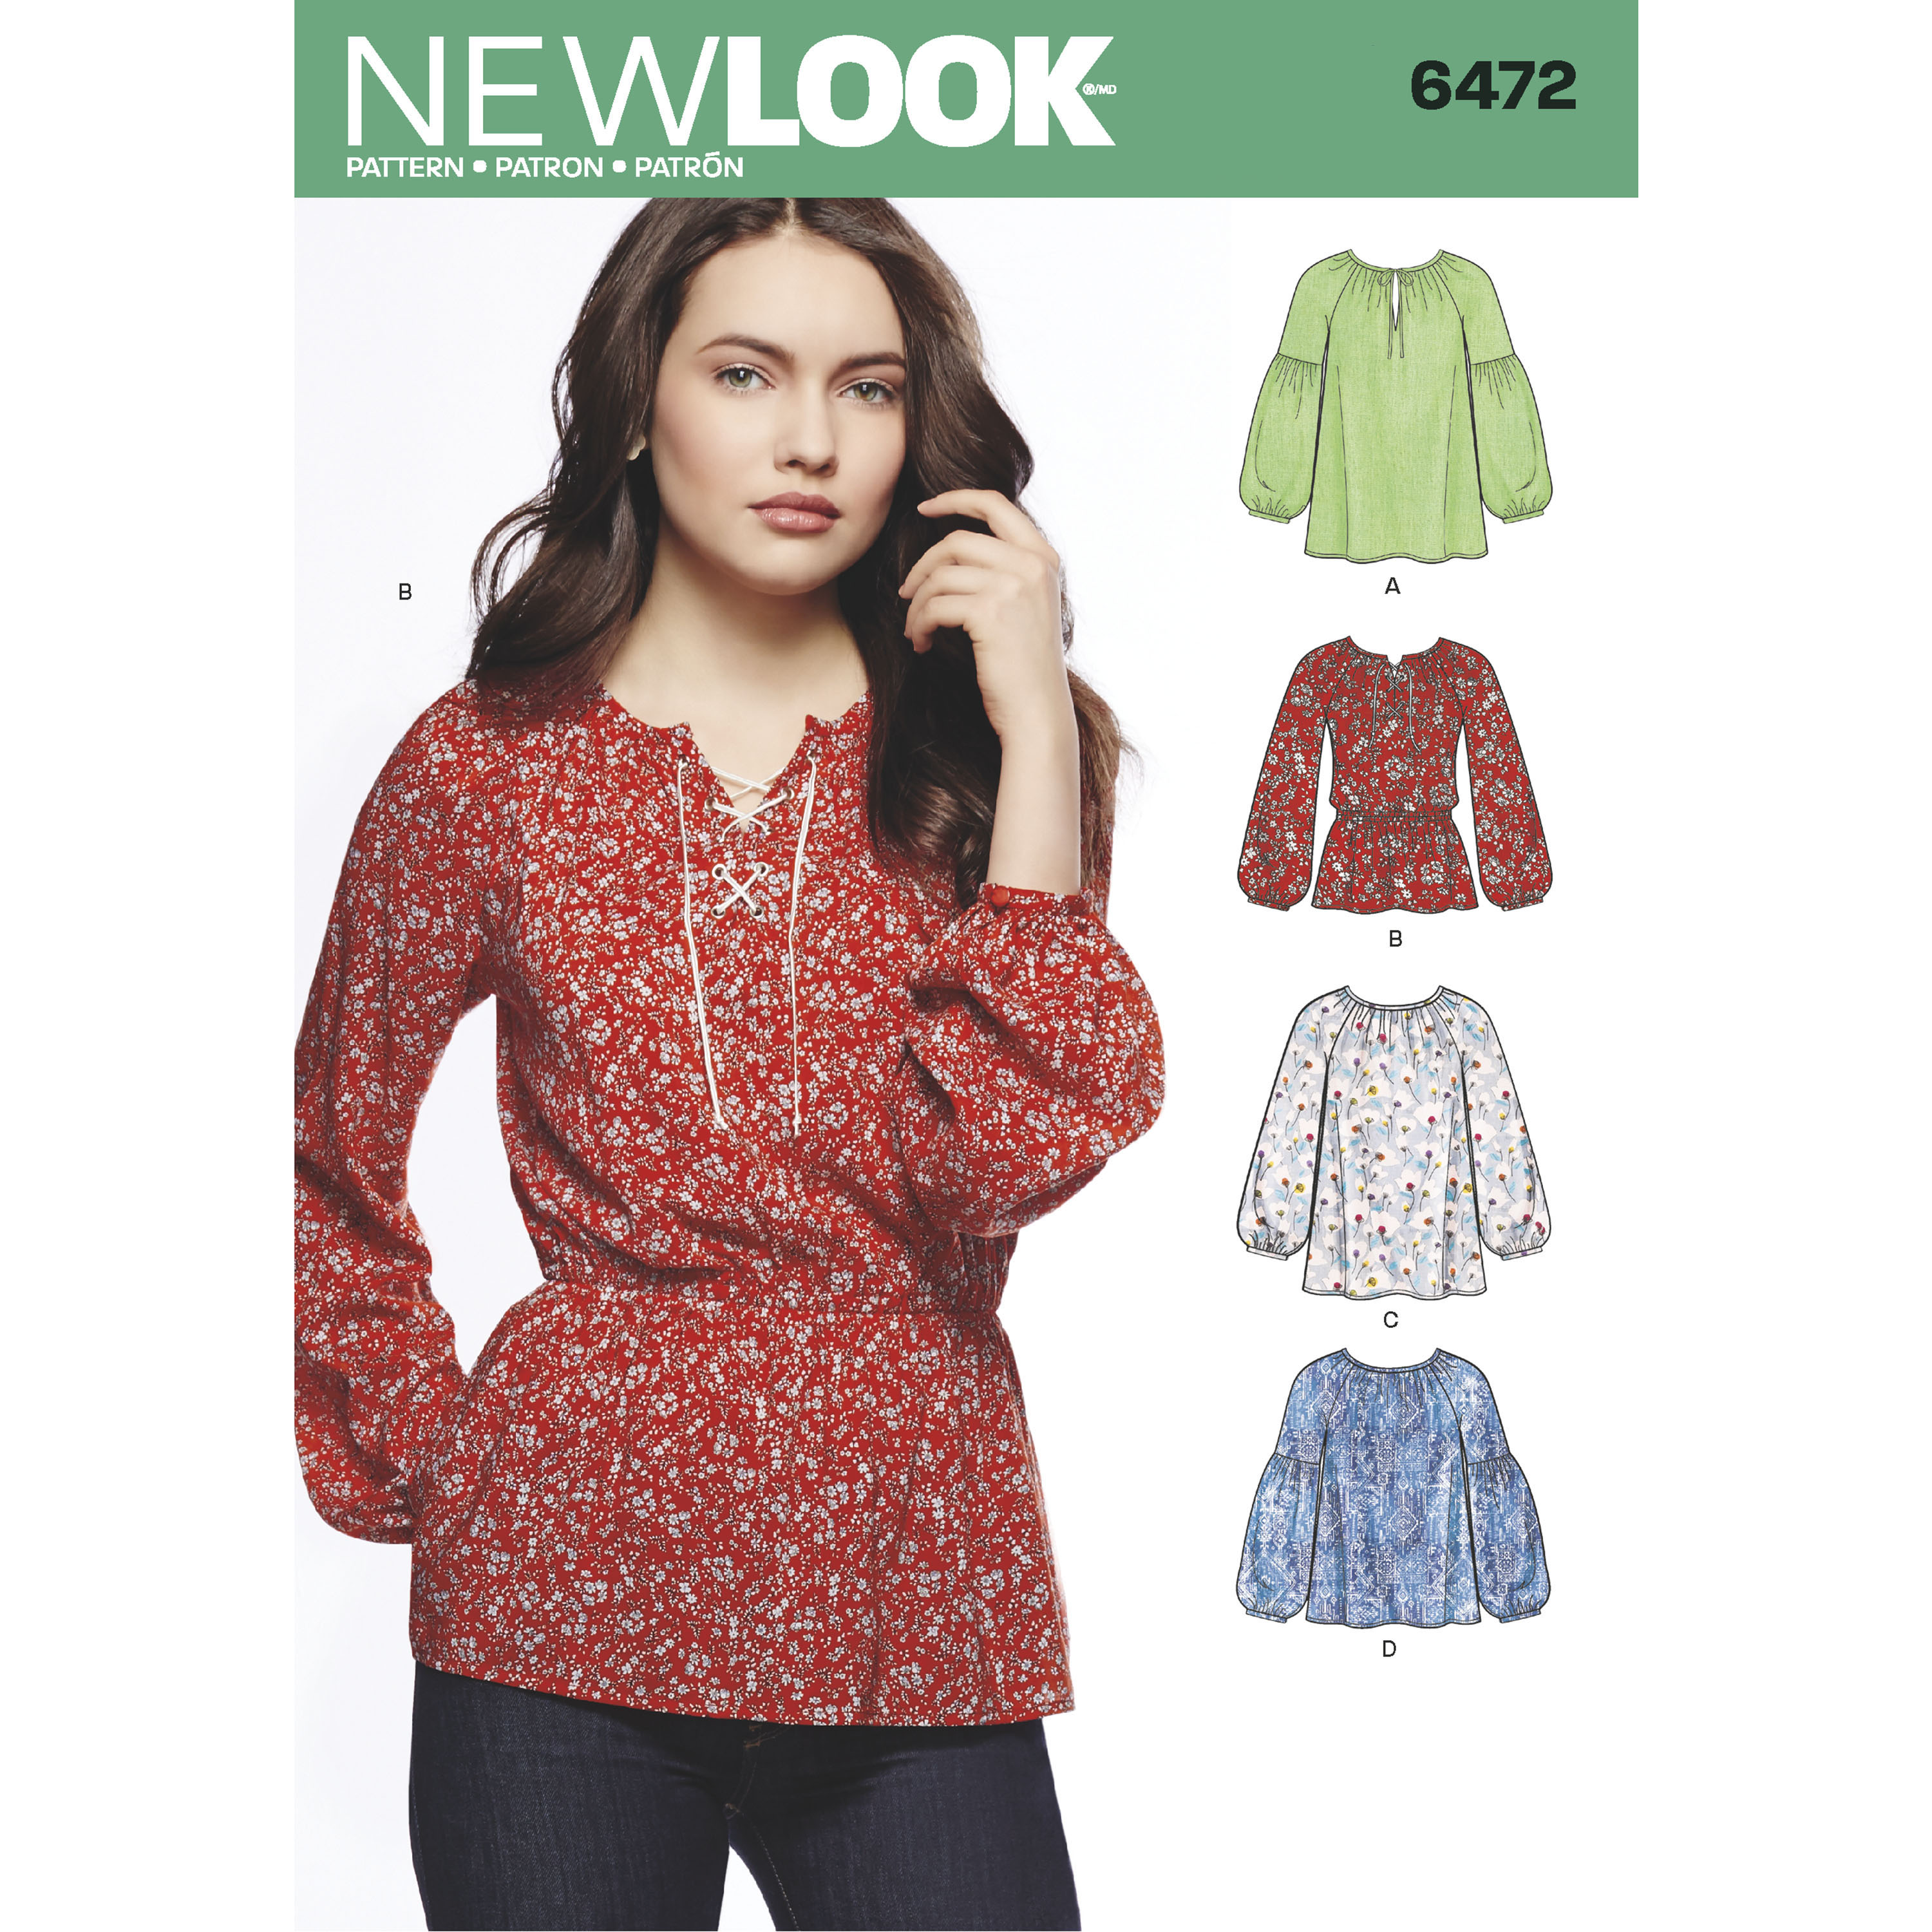 New Look 6472 Misses' Boho Blouses